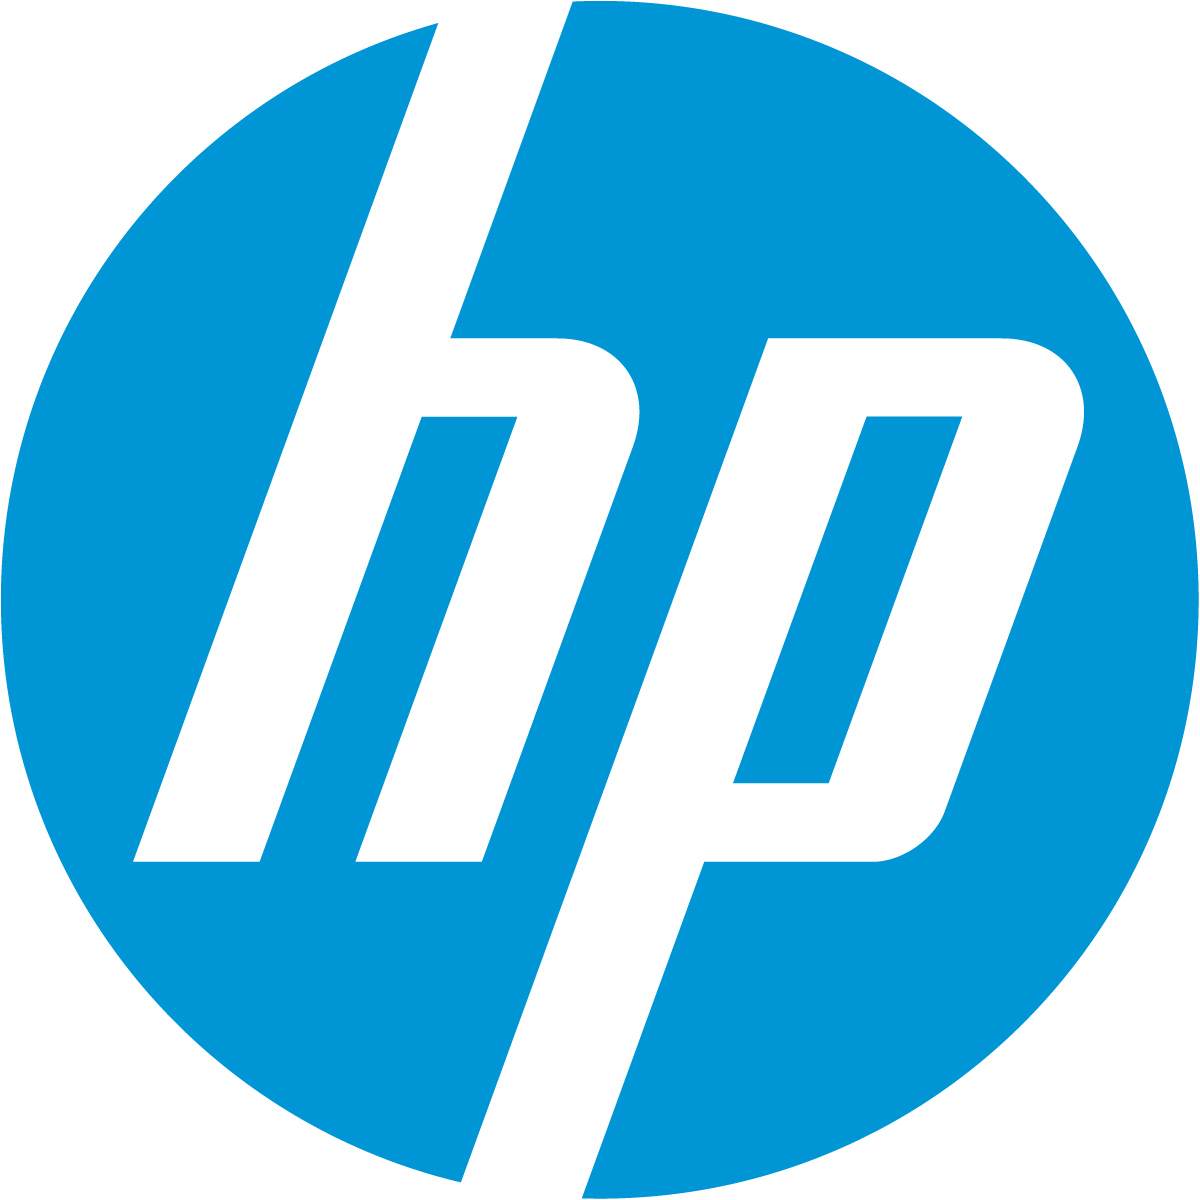 Hewlett-Packard (HP) 's logo